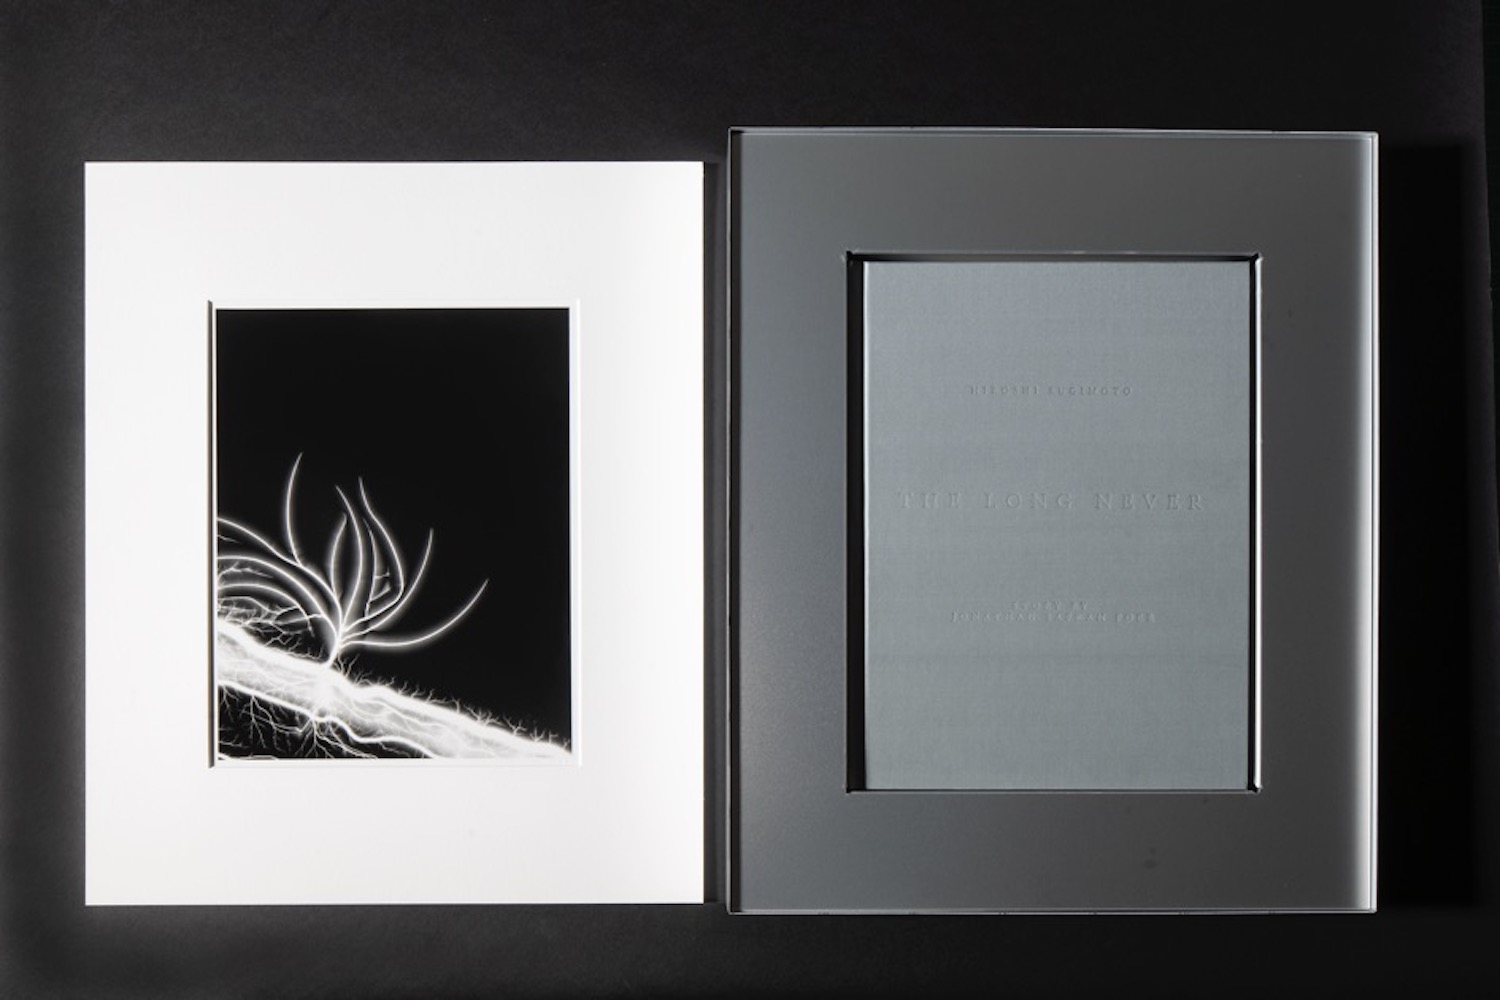 Hiroshi Sugimoto, The Long Never limited edition, 2015, edition of 25 + 5AP